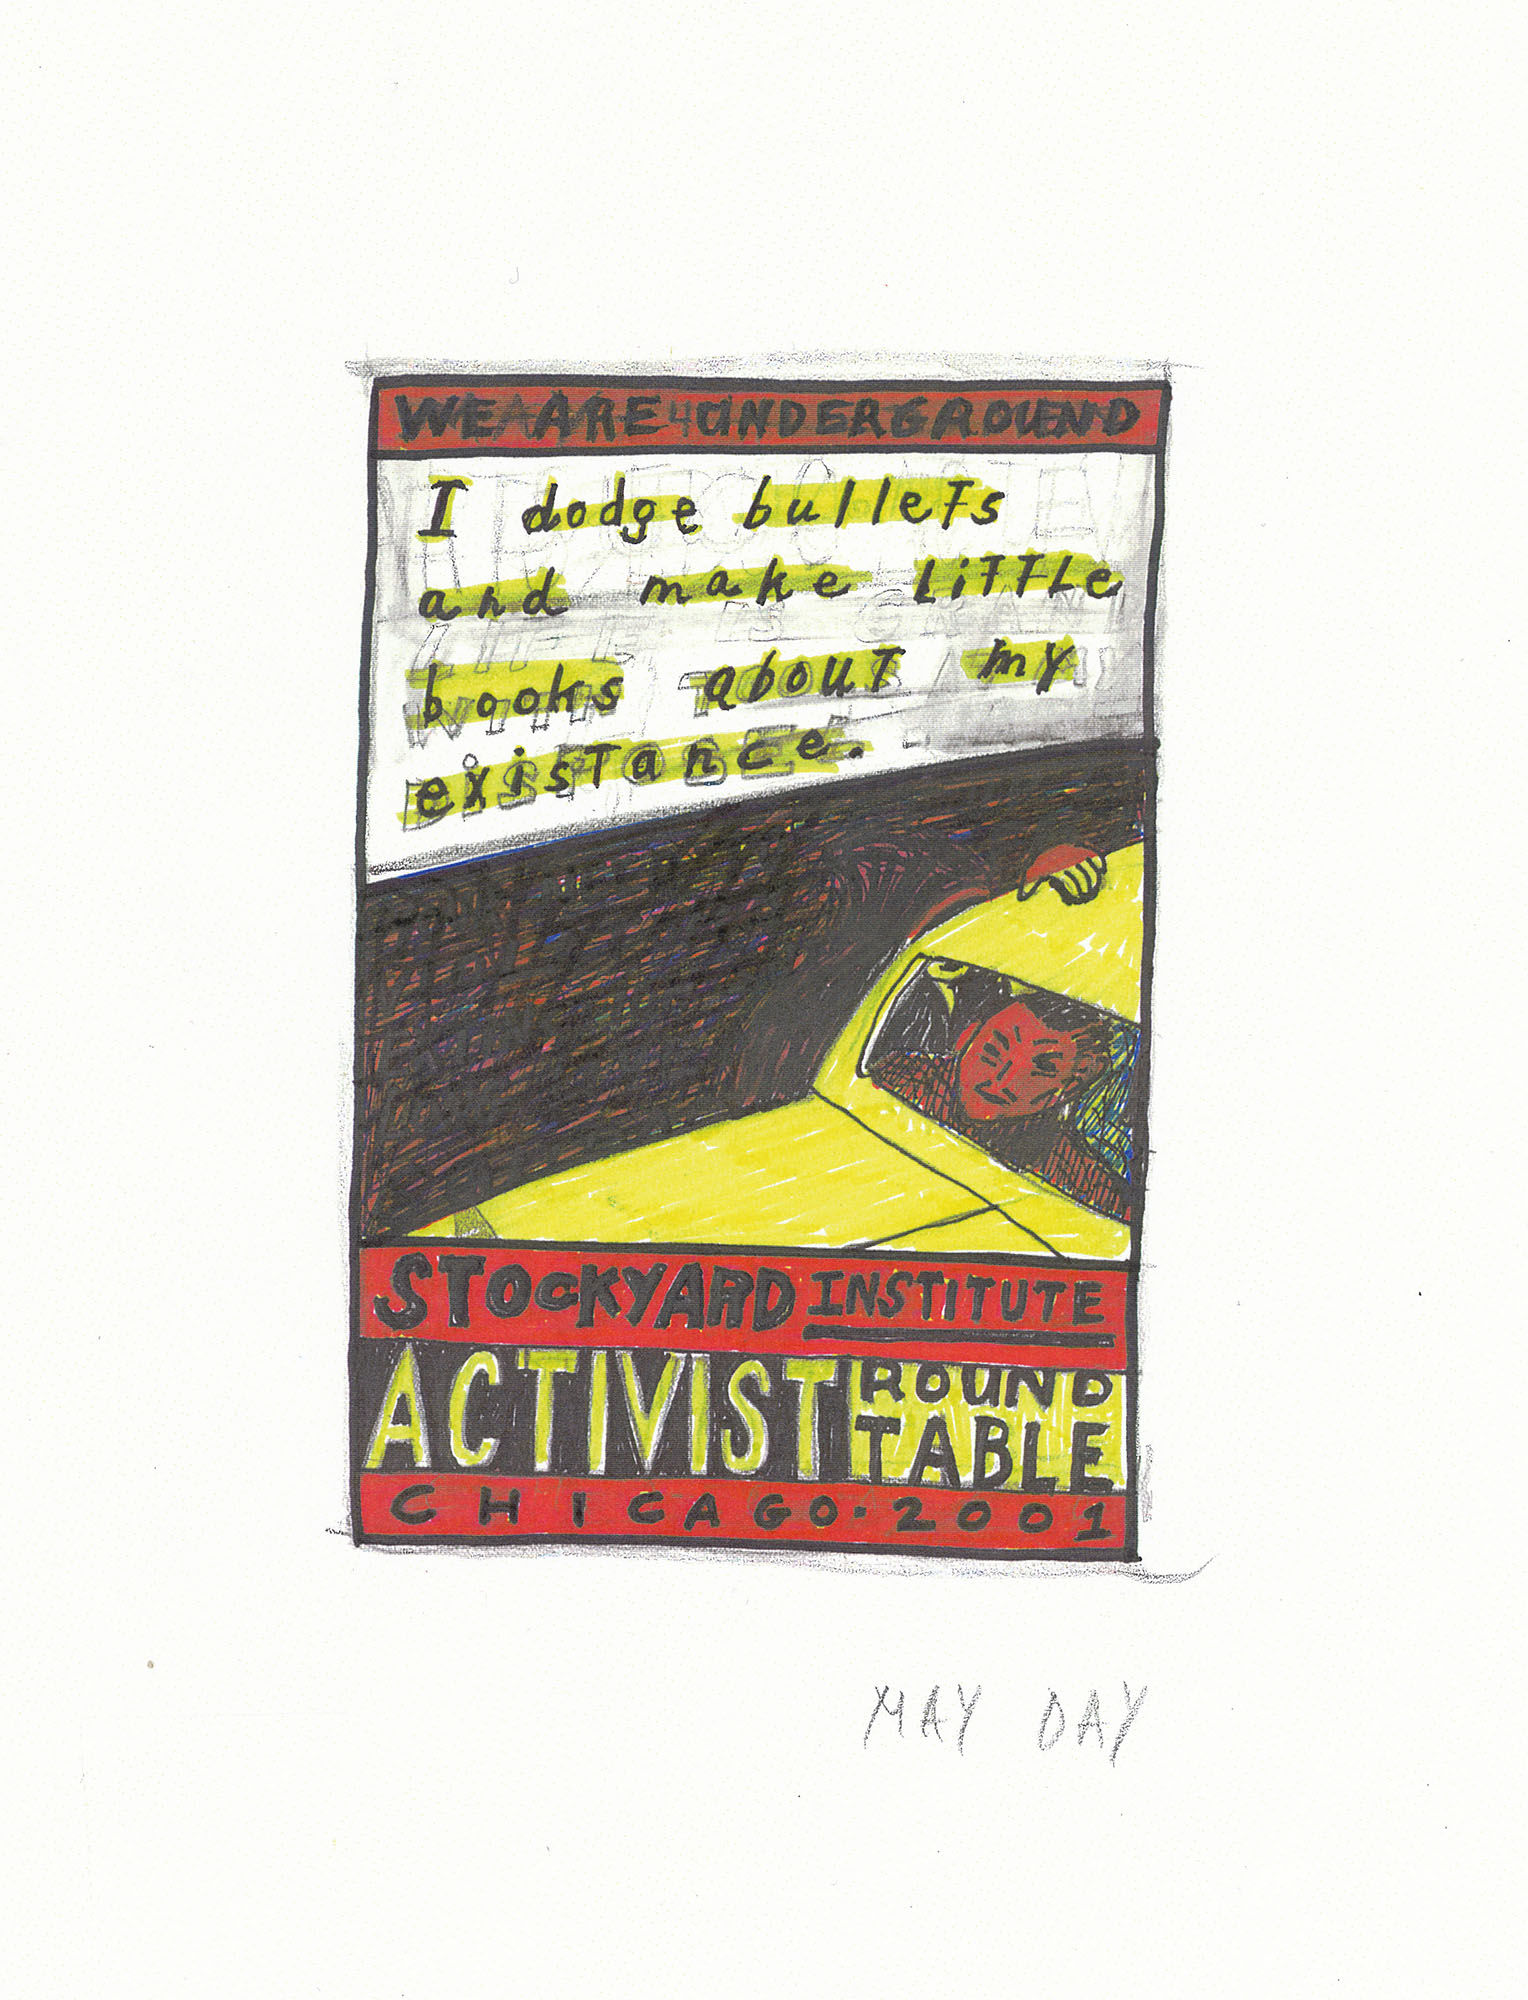 Stockyard Institute, I dodge bullets and make little books about may existence, Activist Round Table, 2001. Drawing. Courtesy of the artist.